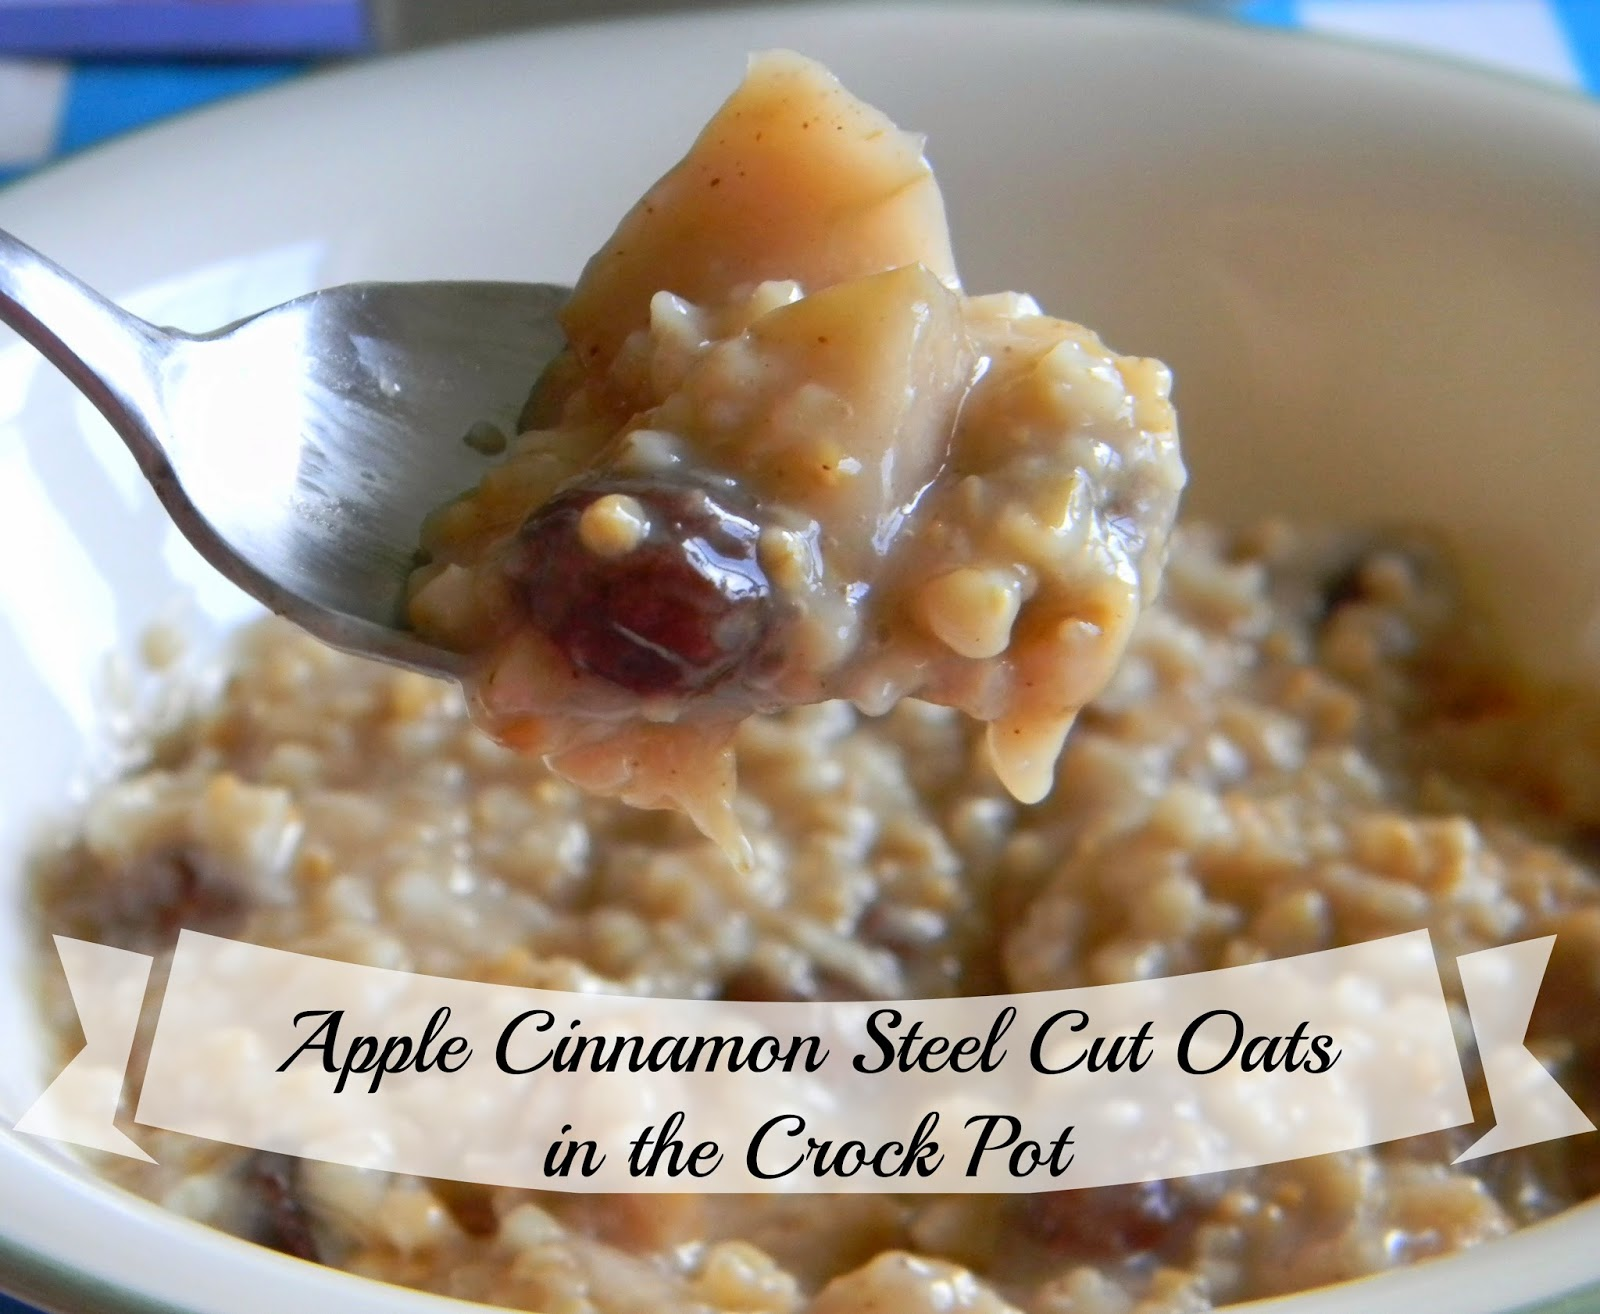 http://pinspiredhome.blogspot.com/2014/05/apple-cinnamon-steel-cut-oats-in-crock.html